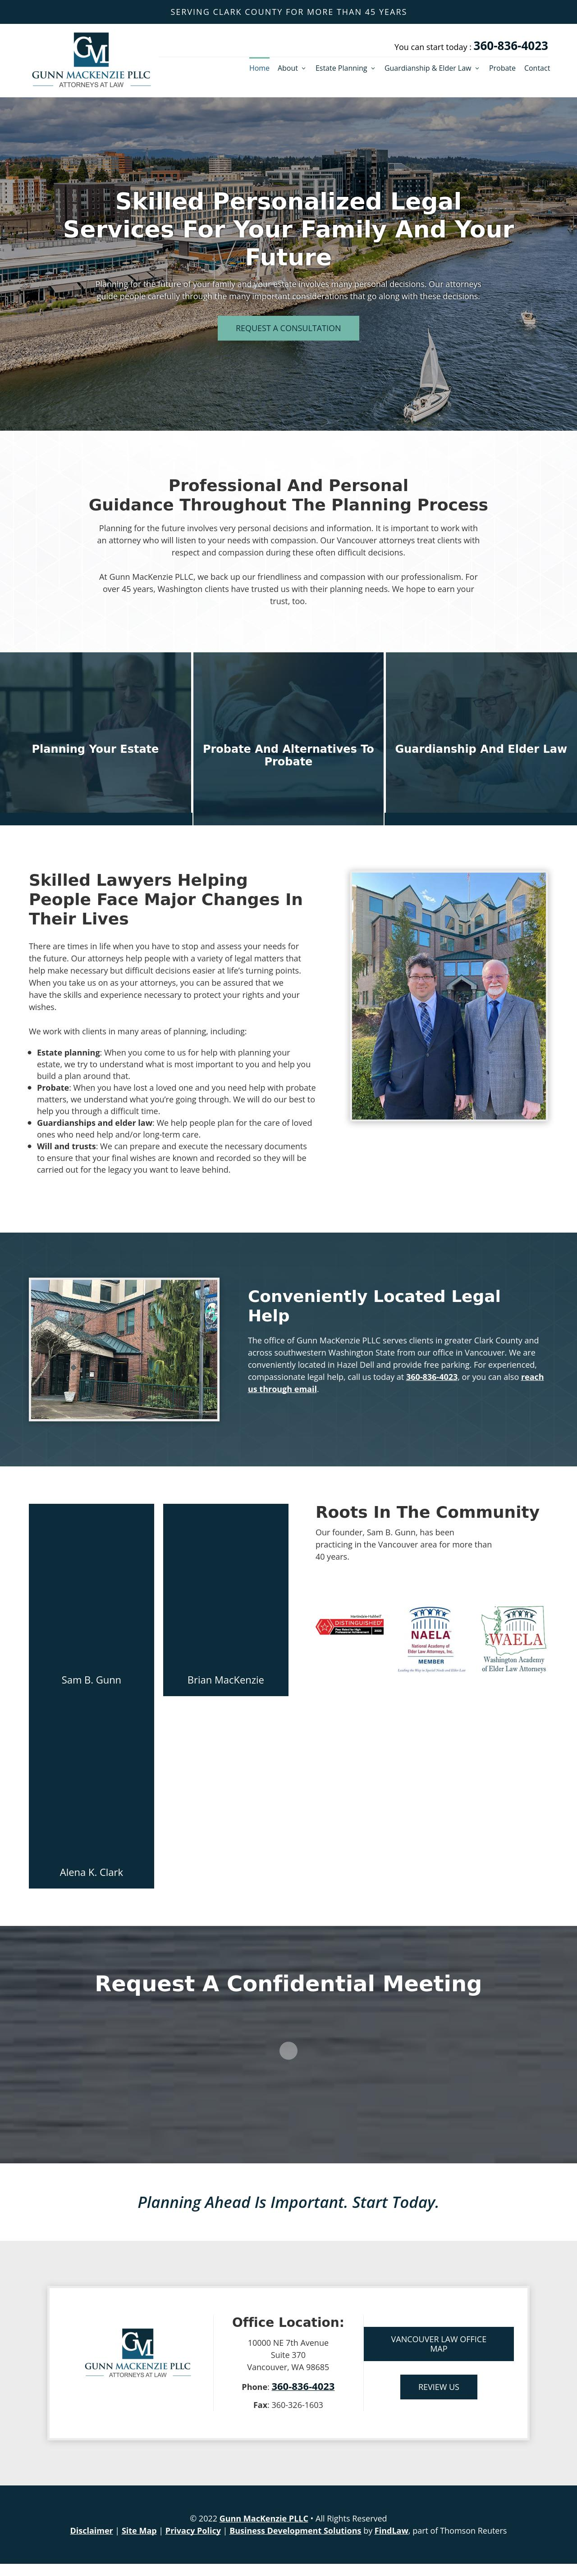 Sam B. Gunn Law Firm PLLC - Vancouver WA Lawyers